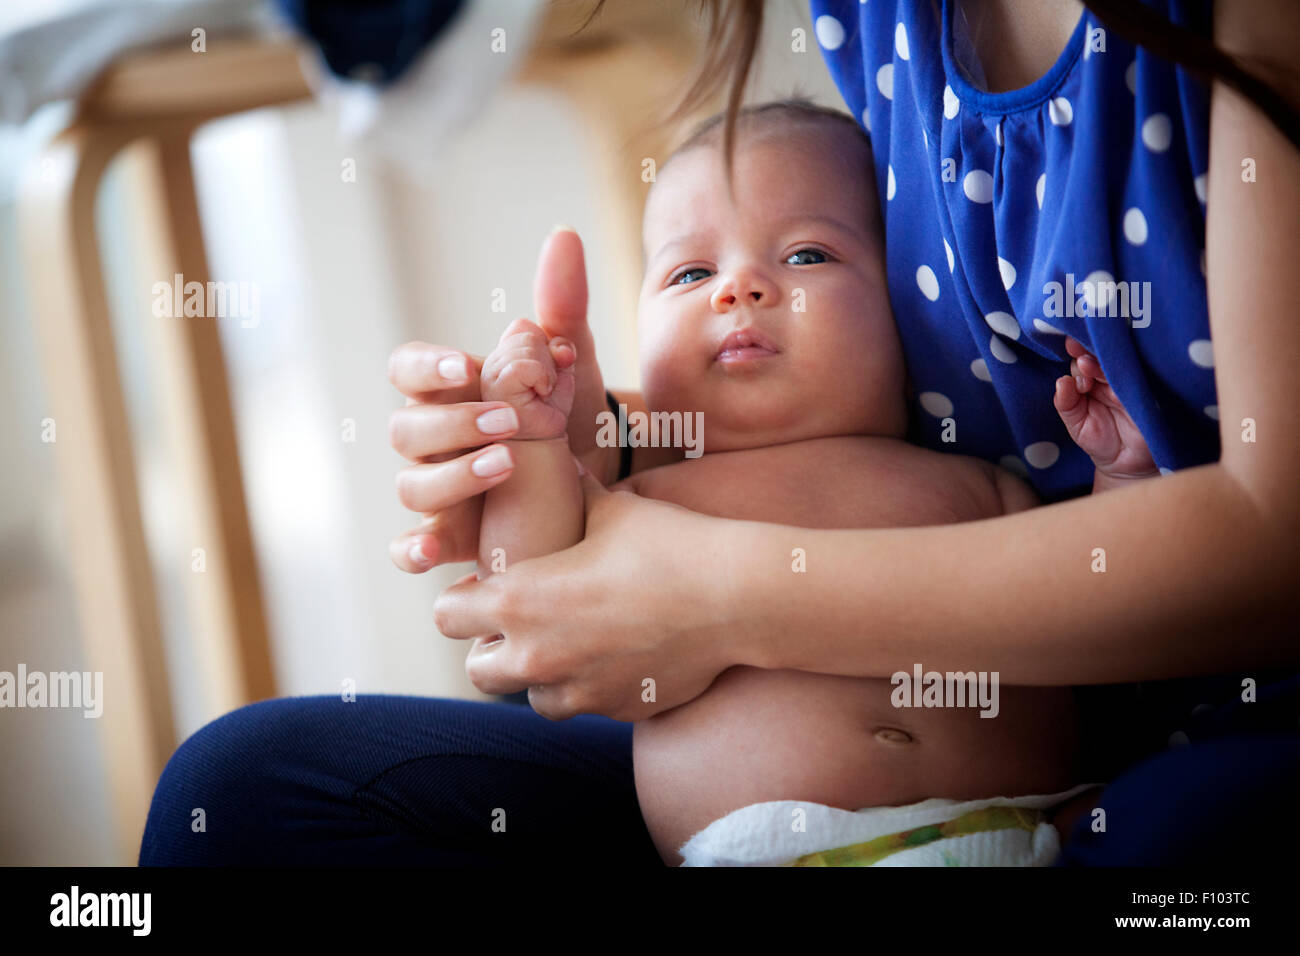 Massée infantile Photo Stock